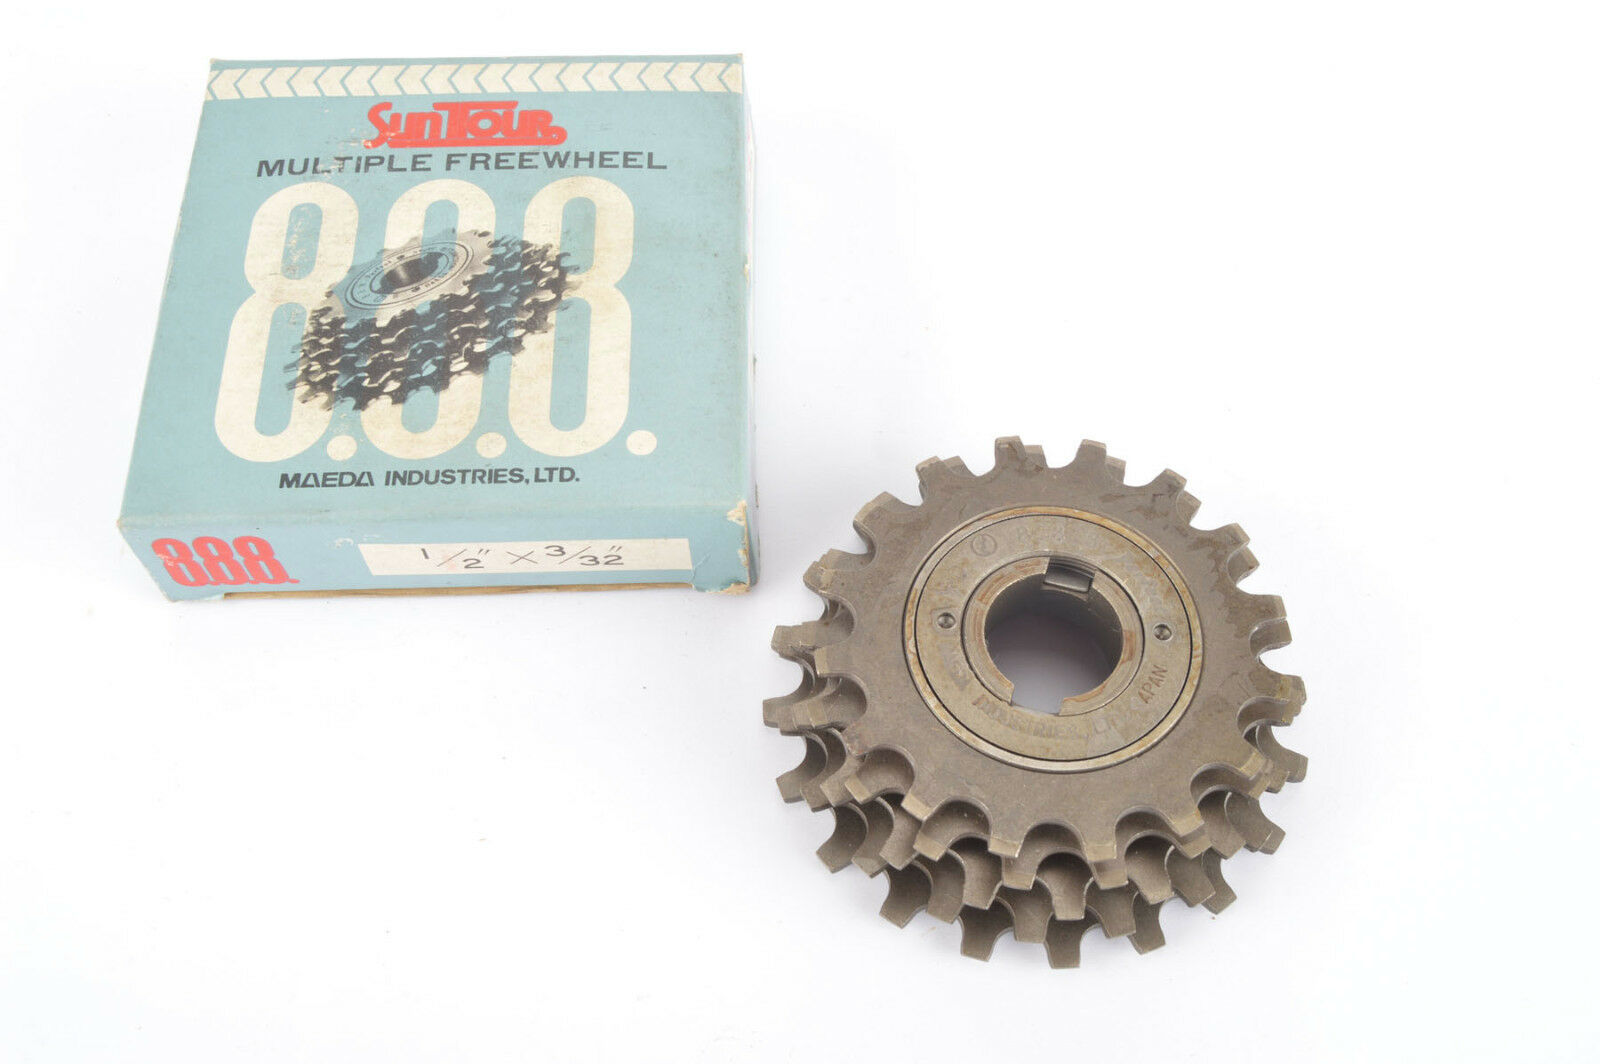 NEW Suntour Perfect 5-speed Freewheel with 16-20 teeth from the 1980s NOS NIB